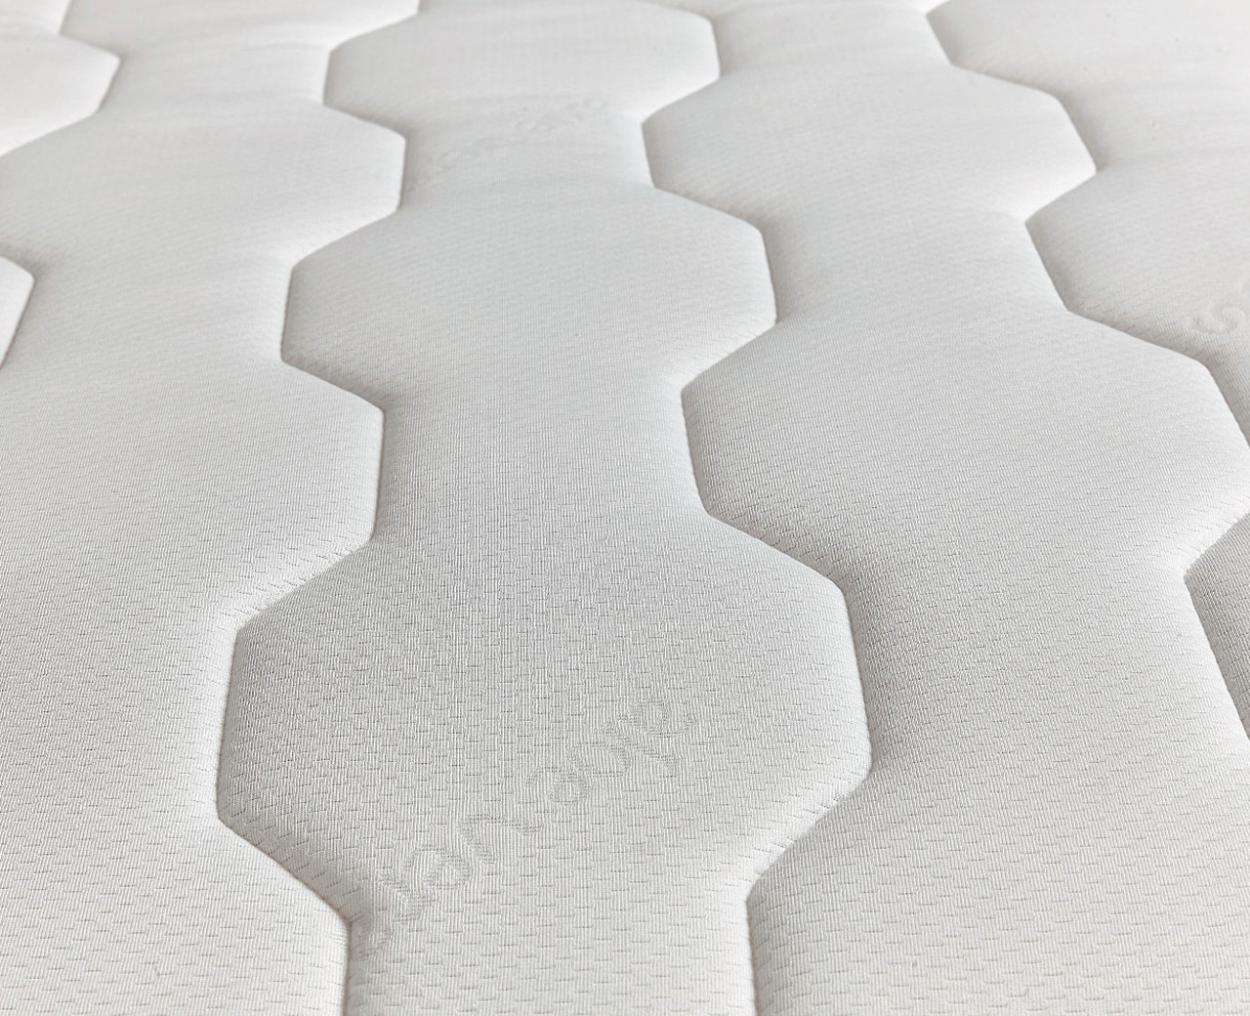 CandiaStrom - Mattress FLOREANA - CLASSIC COLLECTION - Details